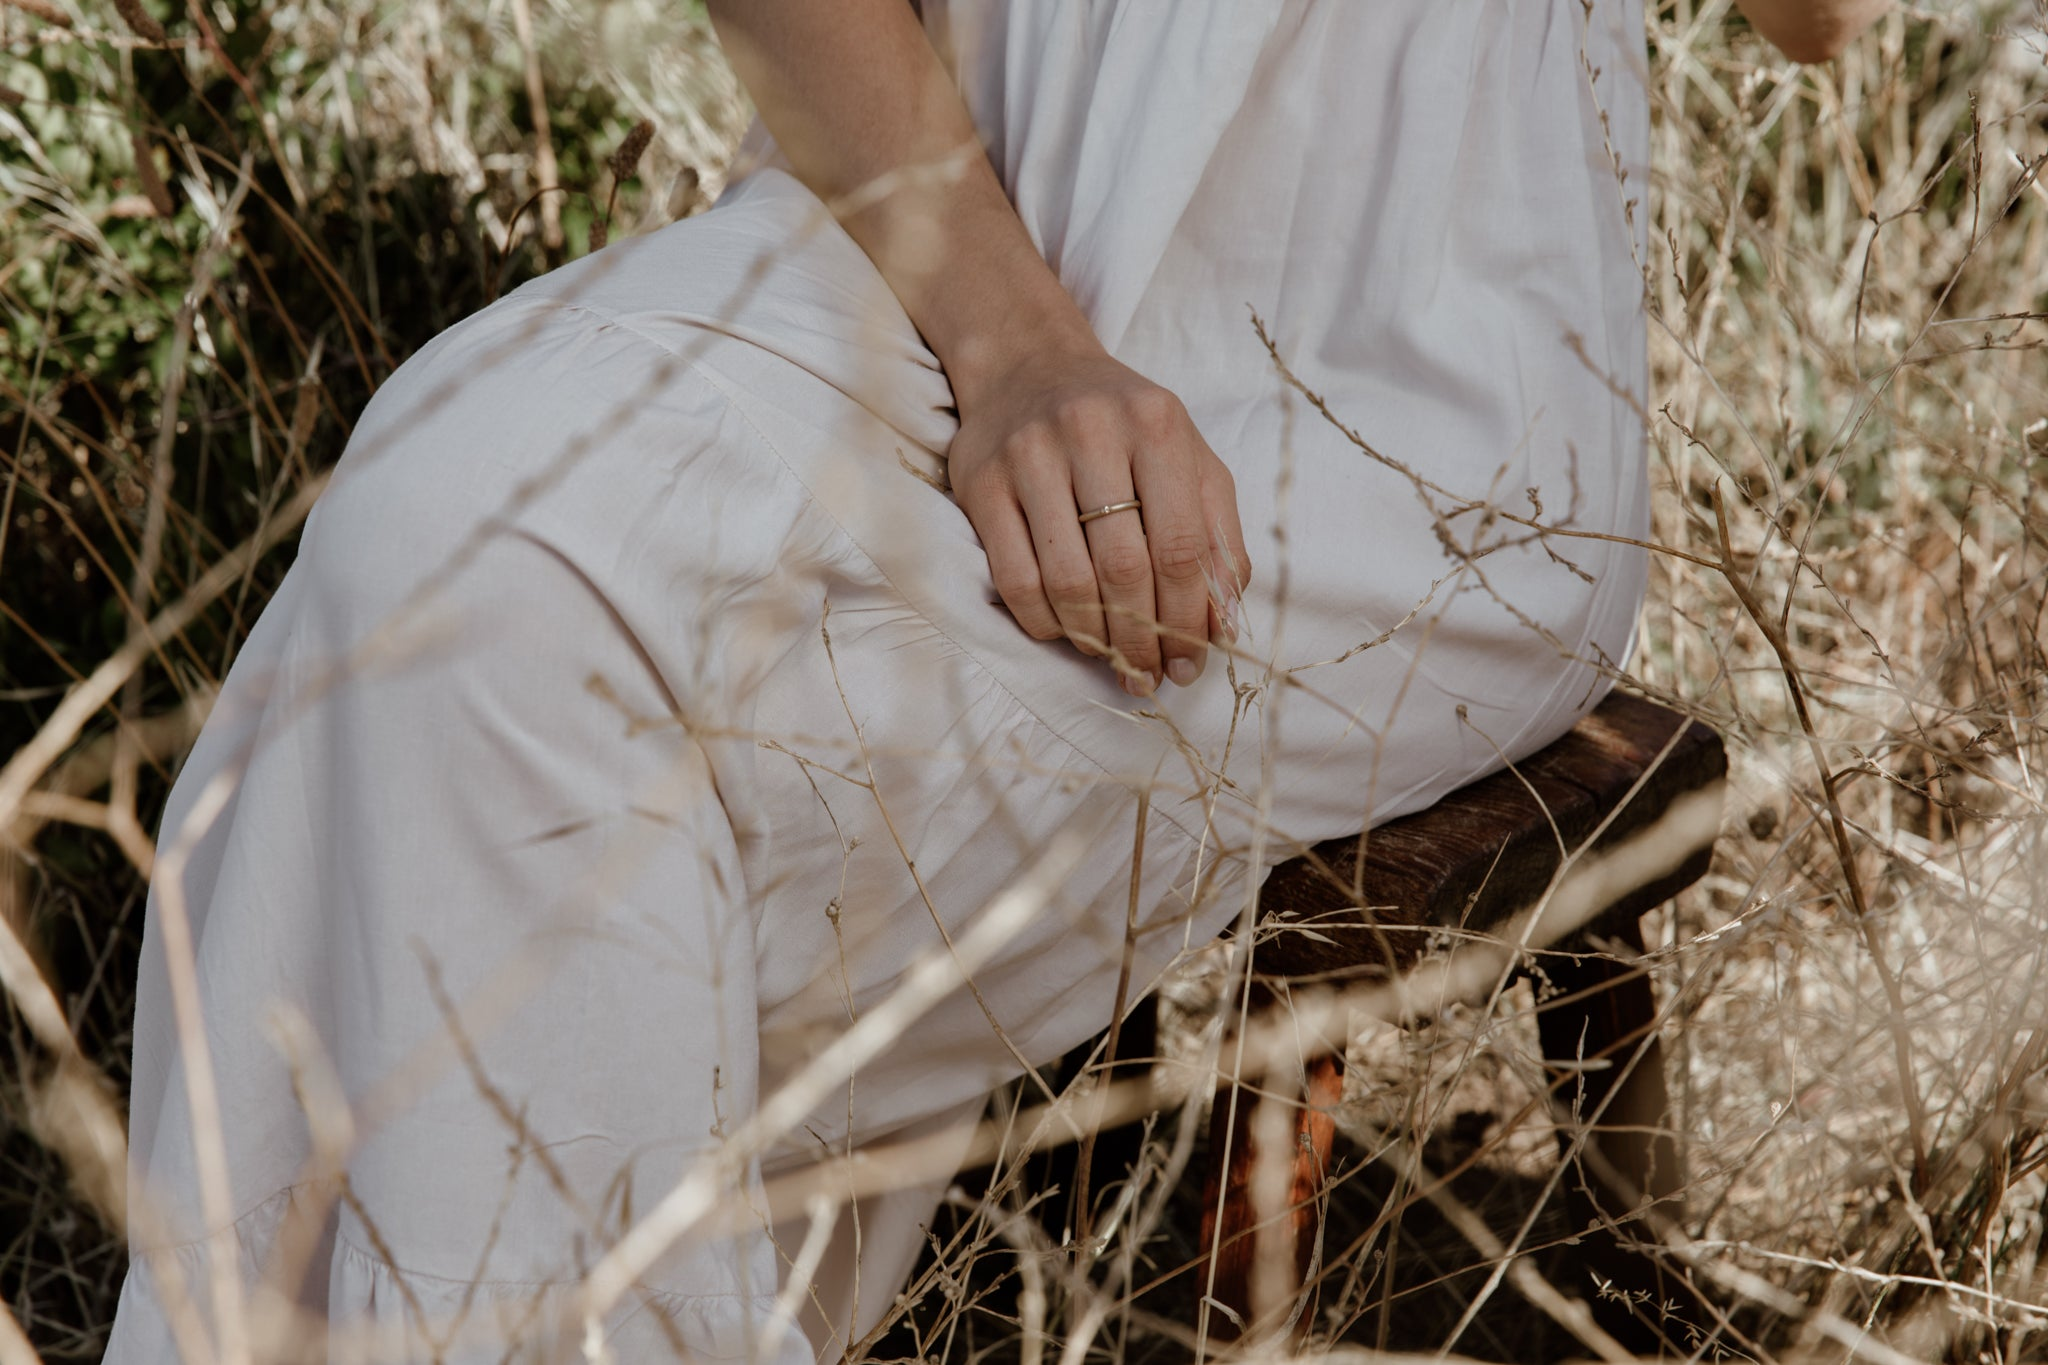 Woman in white linen dress wearing dainty recycled gold ring